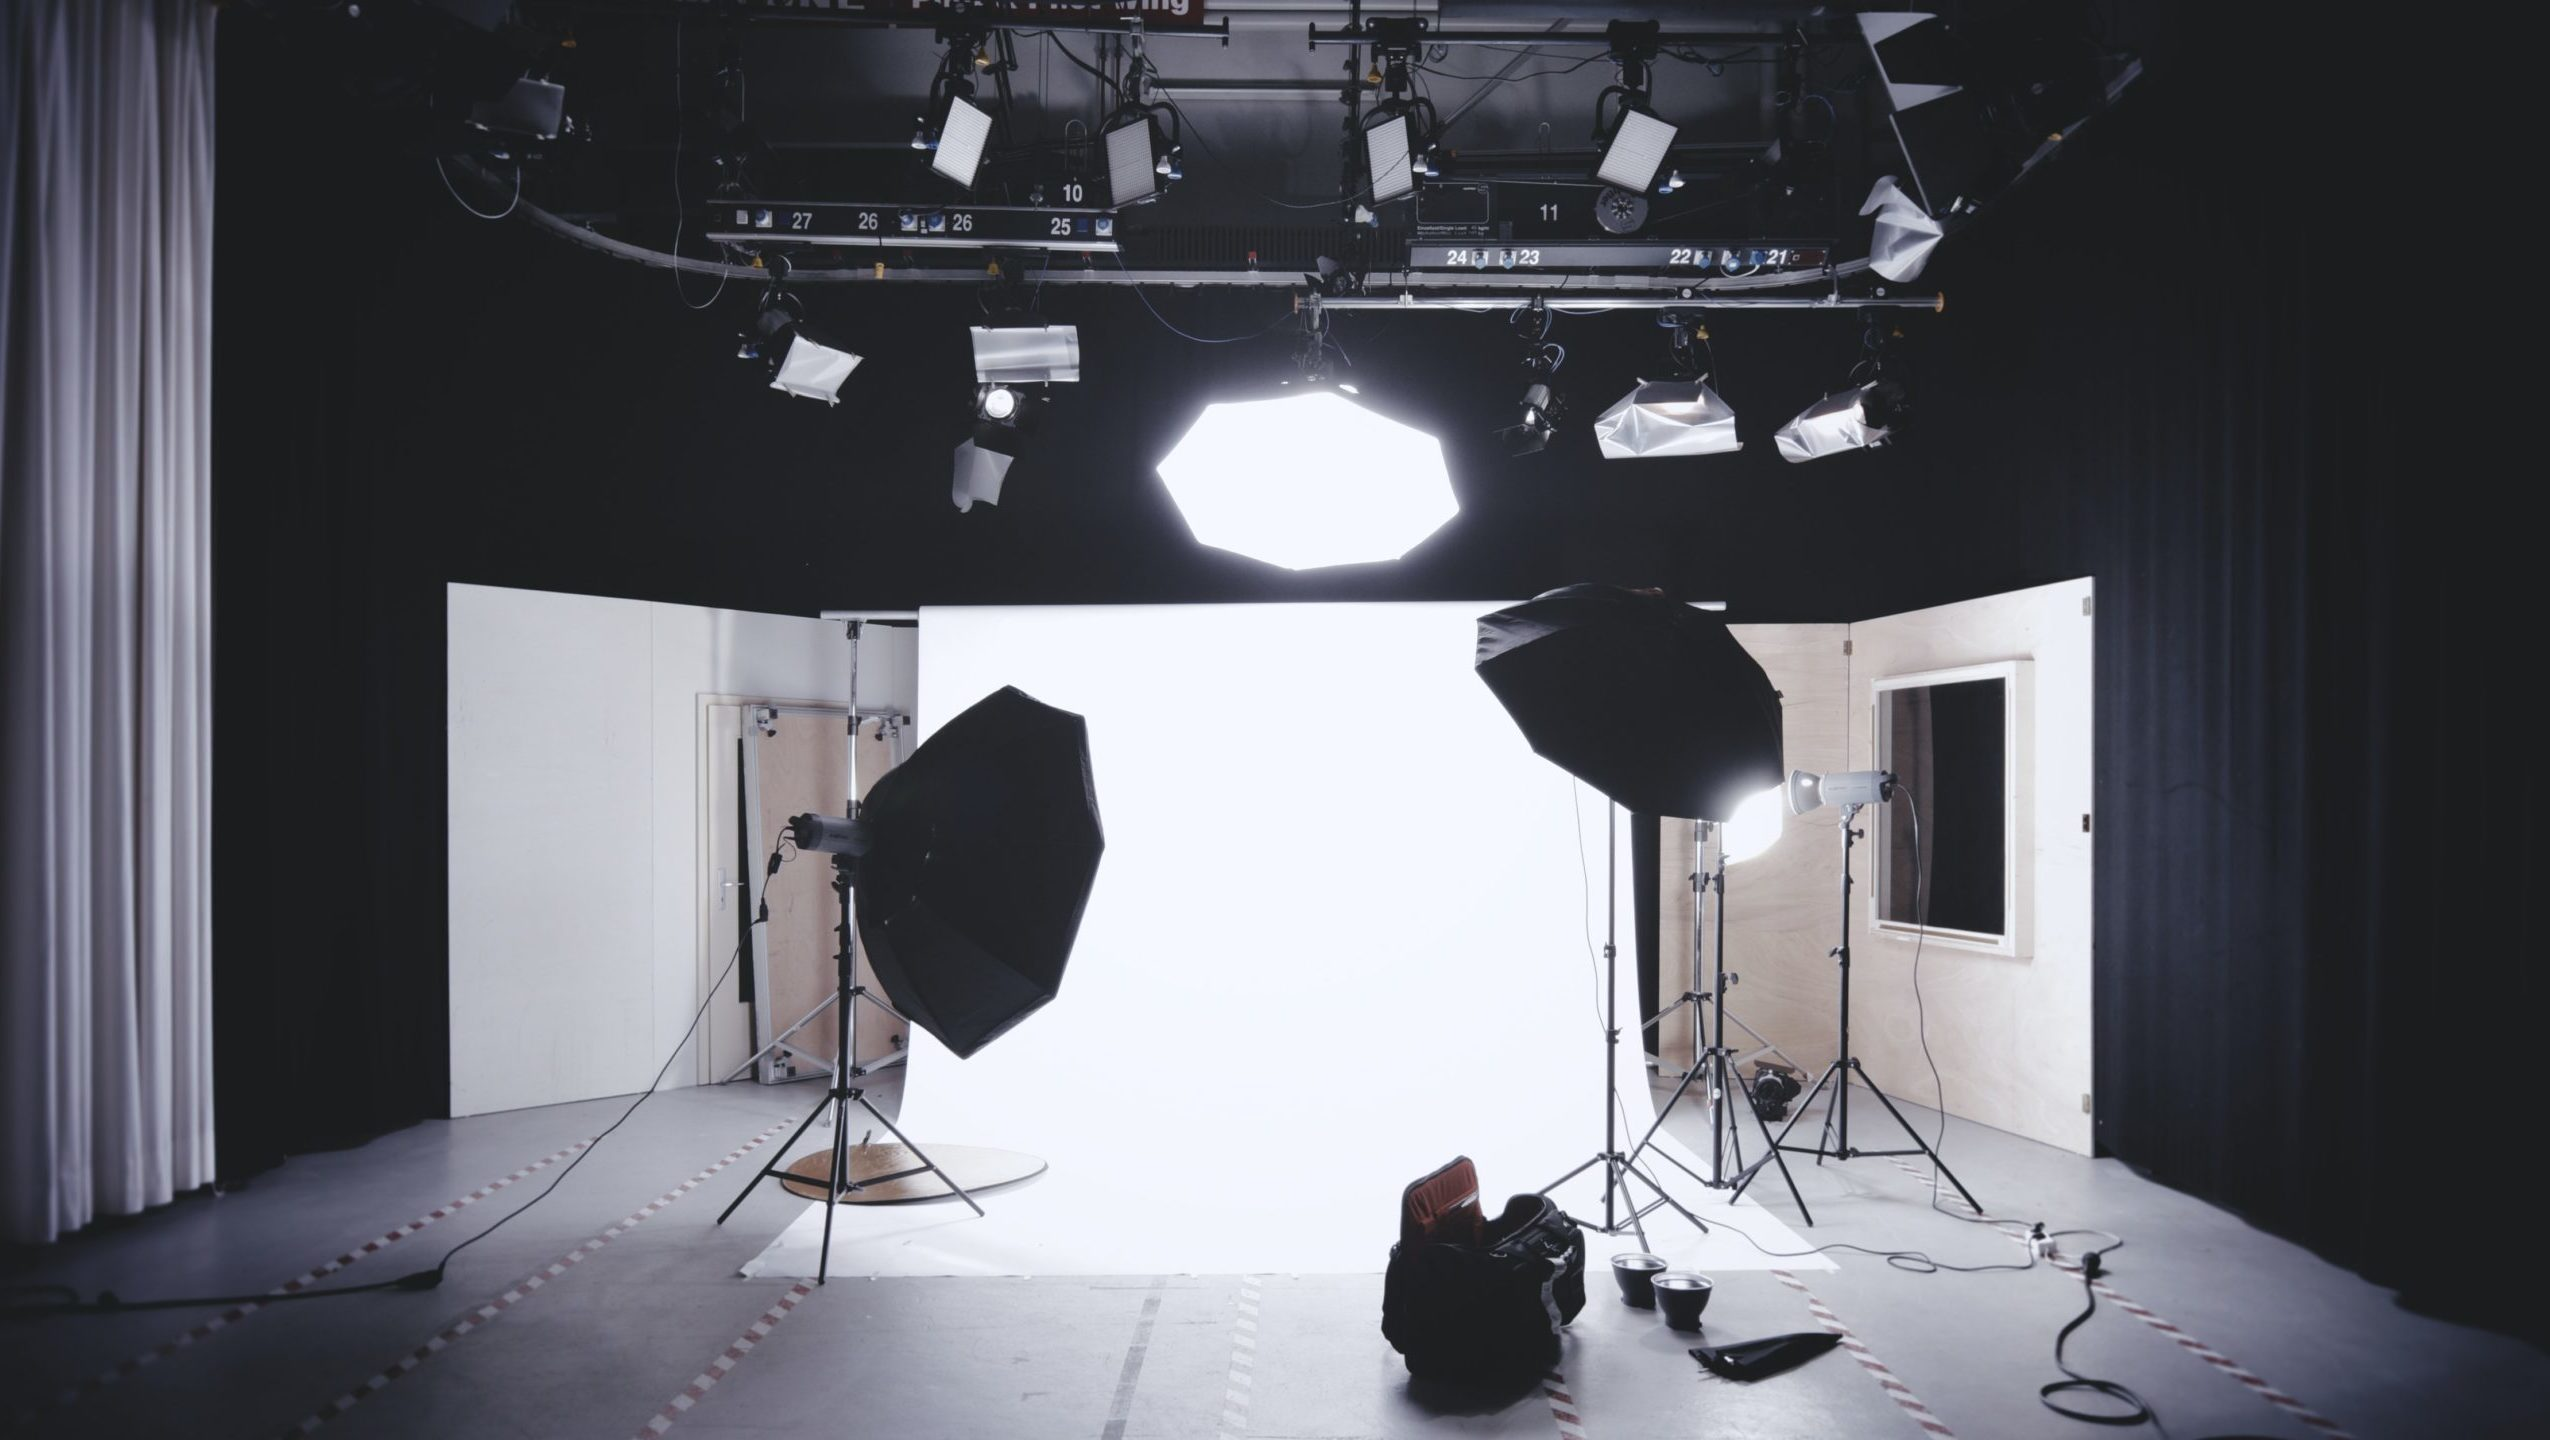 https://www.activeimagemedia.com/wp-content/uploads/2020/07/photo-studio-with-white-wooden-framed-wall-mirror-134469-1-scaled-2550x1440.jpg